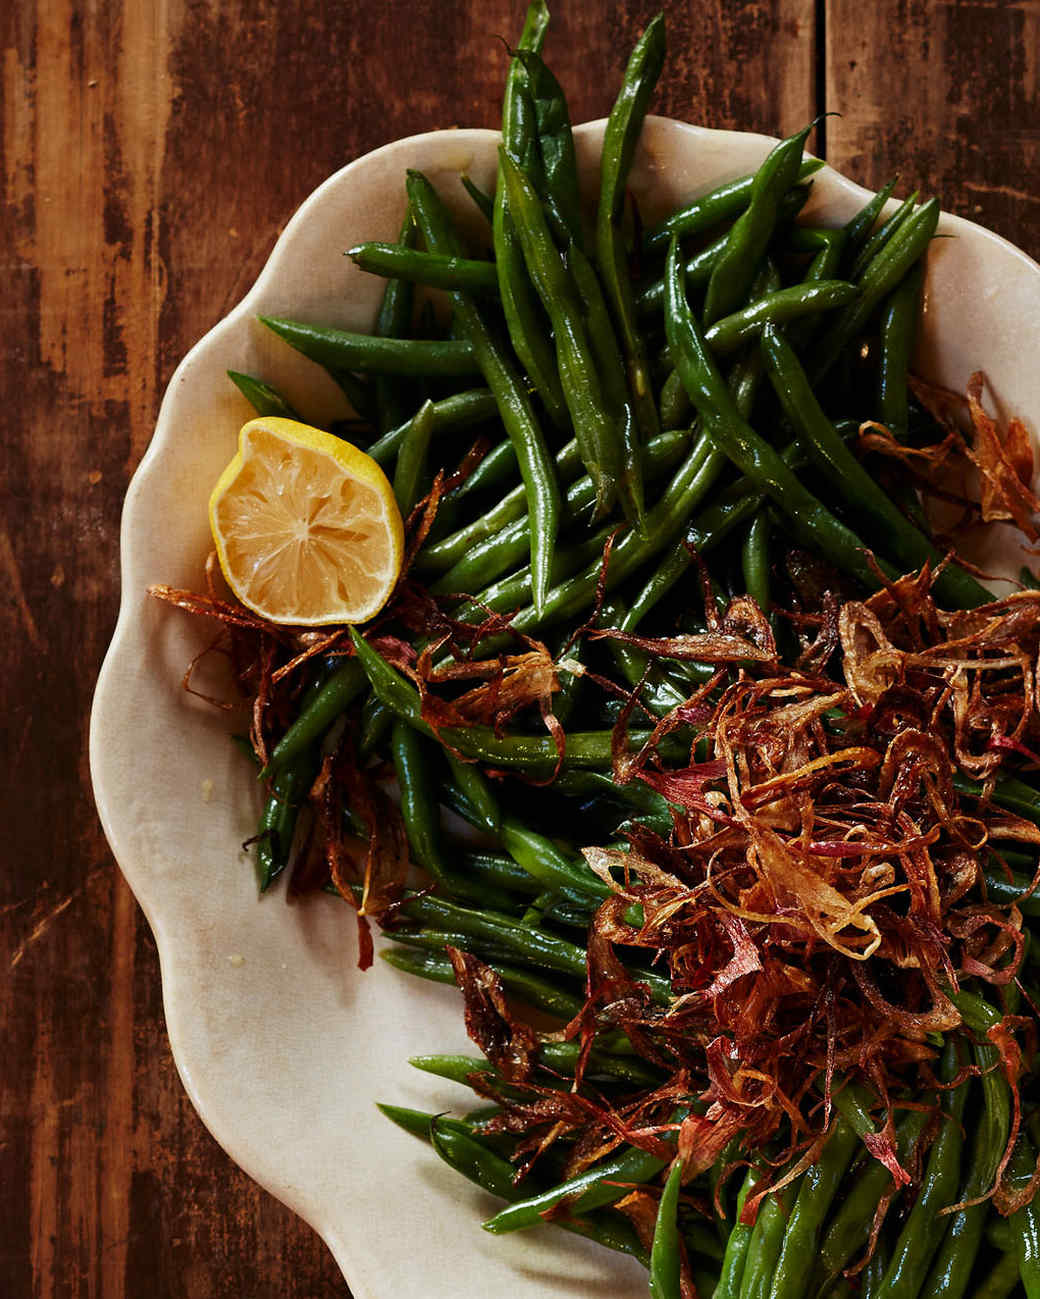 Buttered Green Beans with Shallots and Lemon